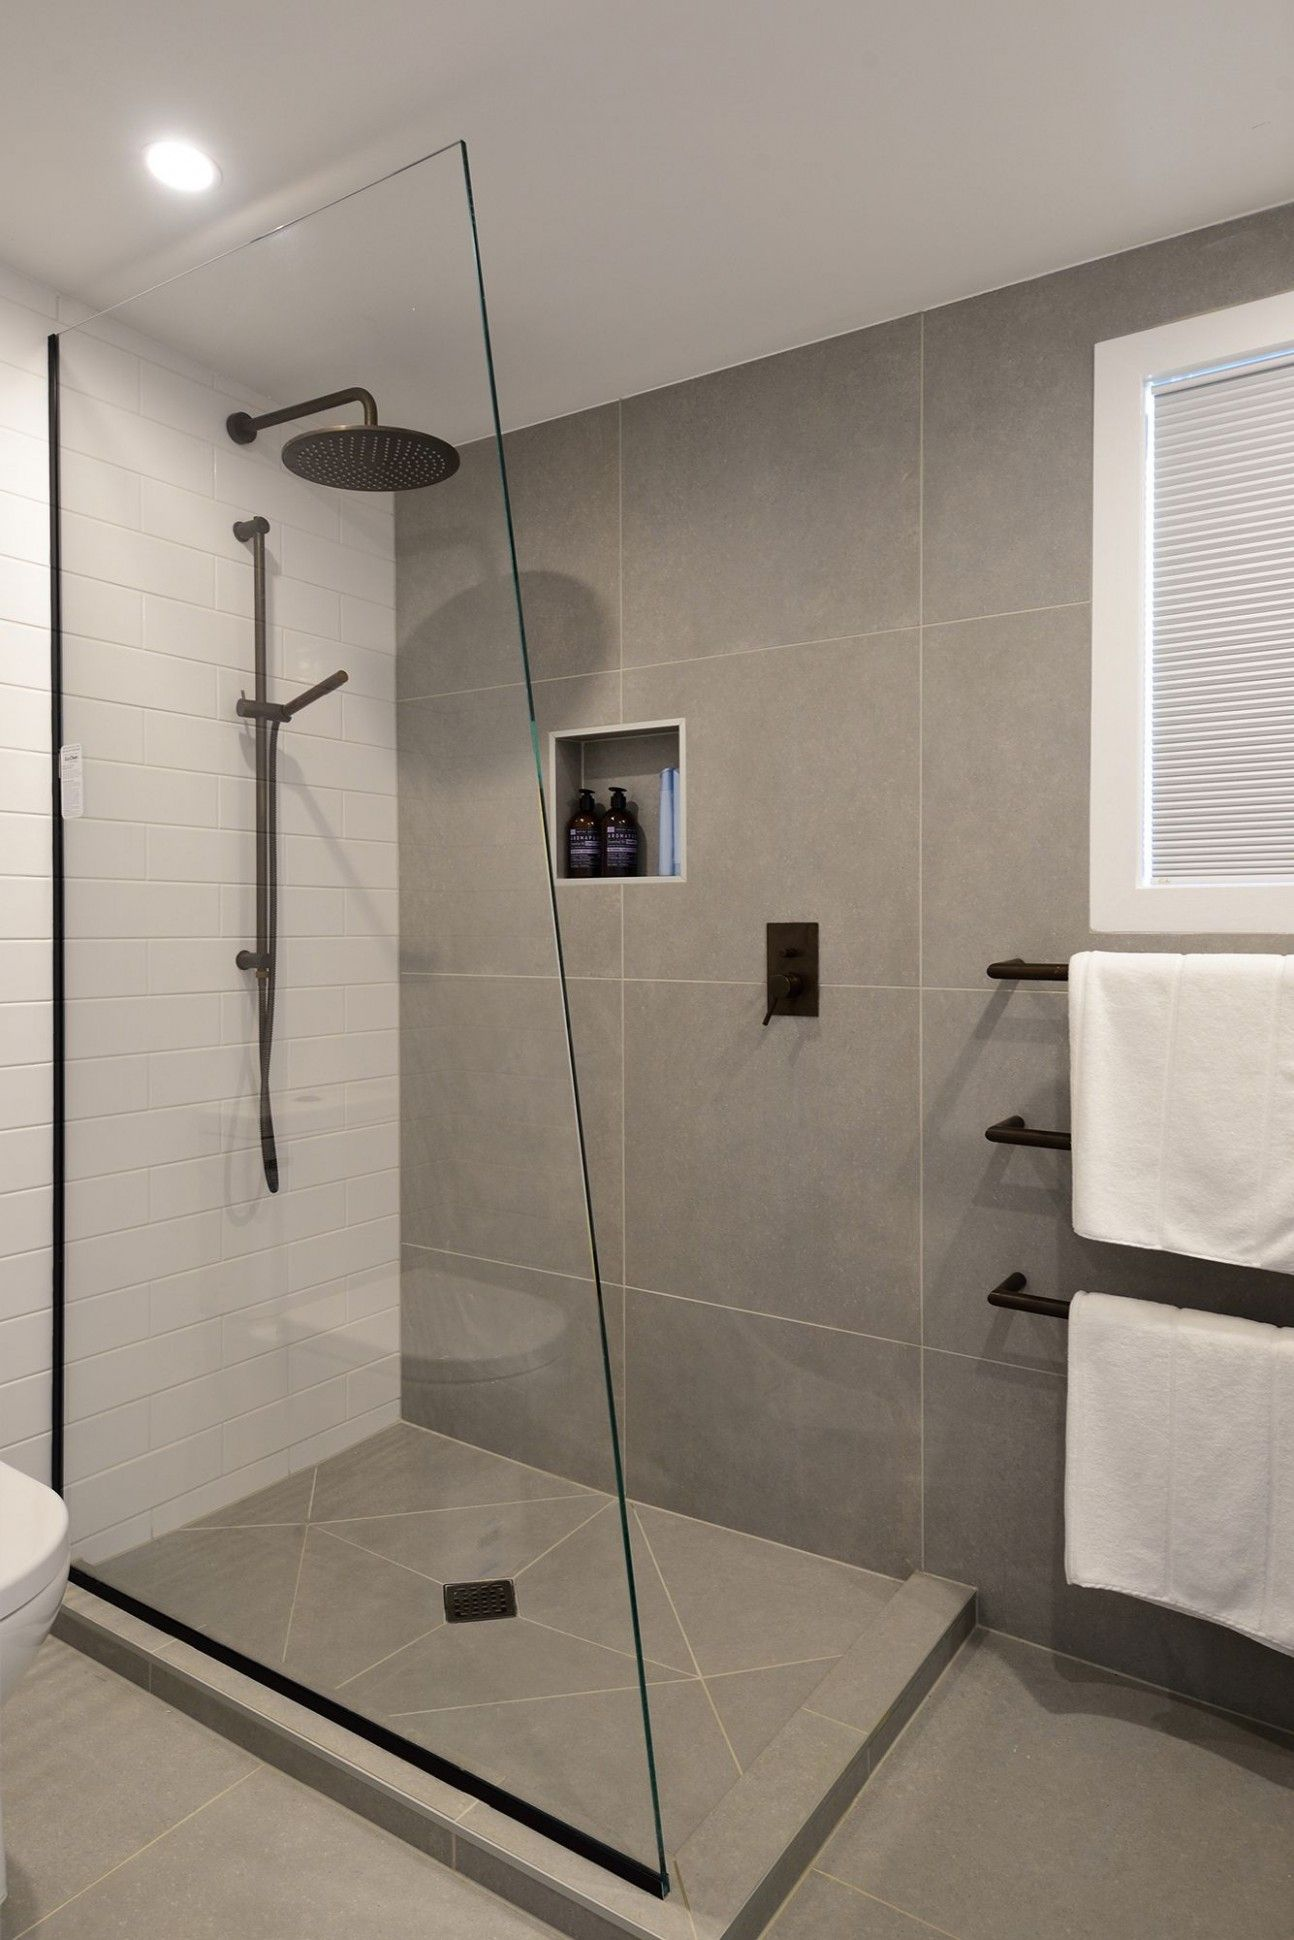 Seven Facts That Nobody Told You About Wall Tile Ideas Nz In 2020 Bathroom Shower Walls Bathroom Interior Bathroom Design Small